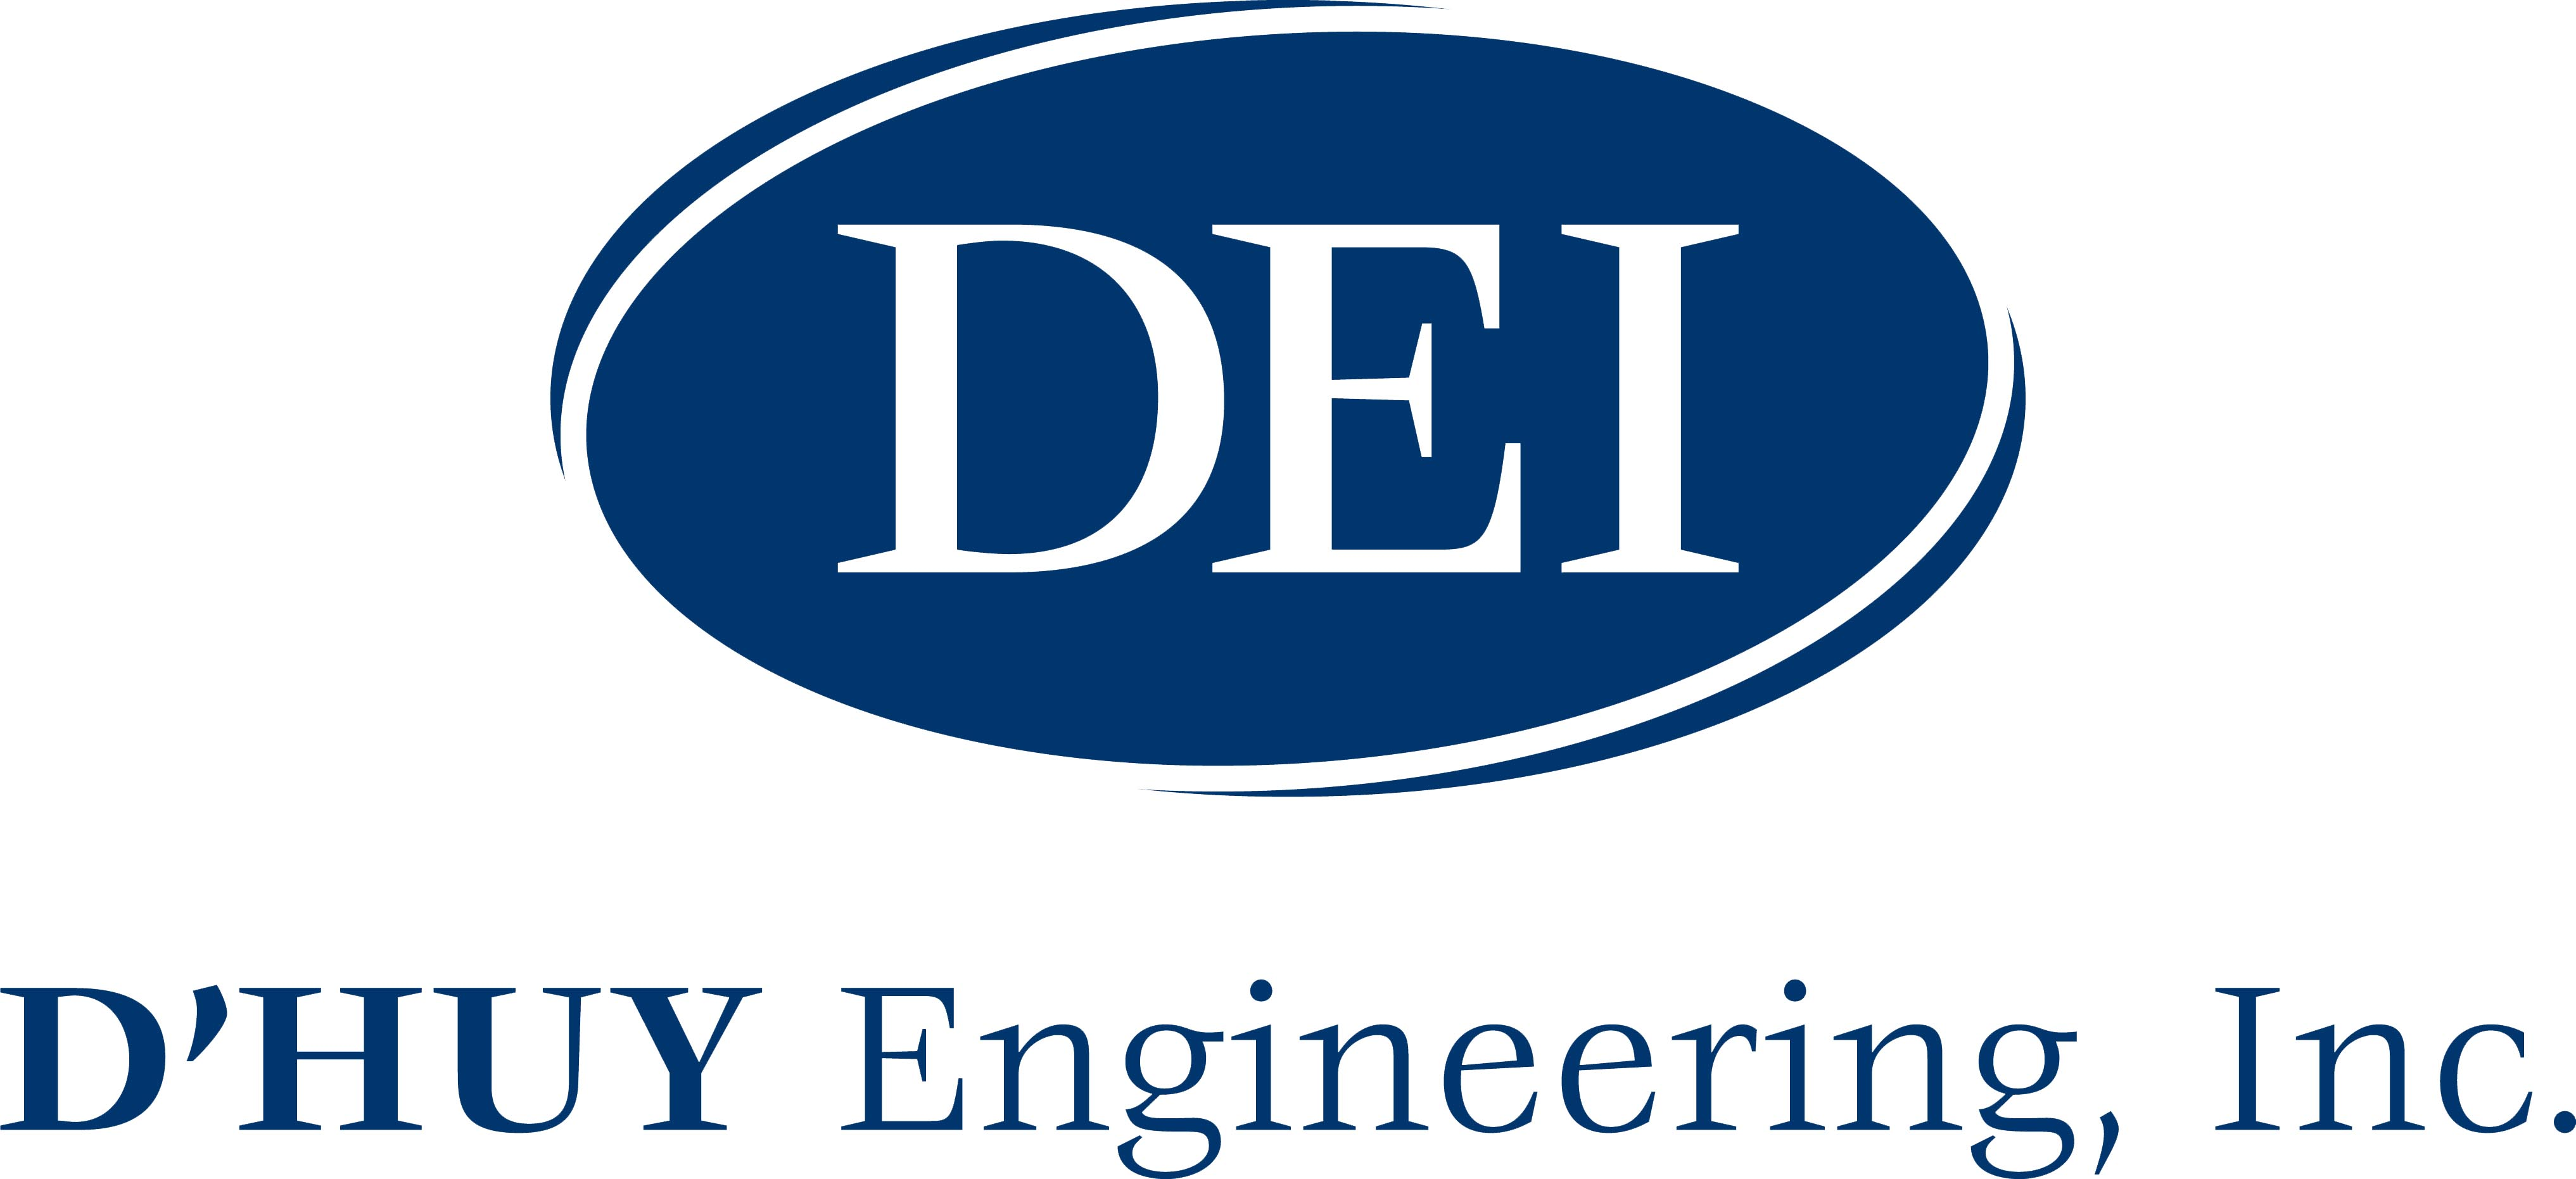 D'Huy Engineering, Inc.